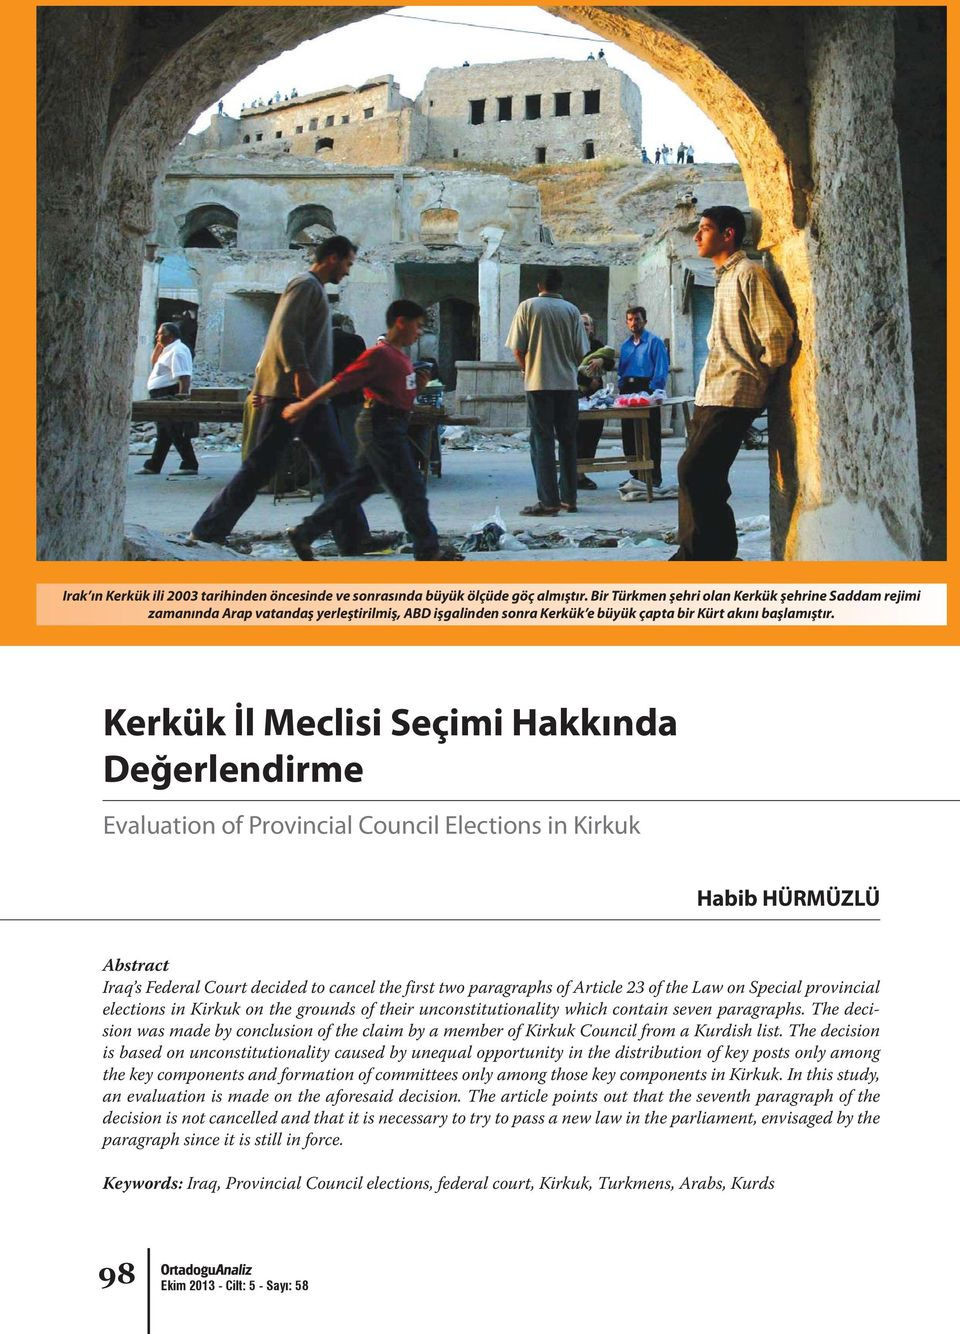 Kerkük İl Meclisi Seçimi Hakkında Değerlendirme Evaluation of Provincial Council Elections in Kirkuk Habib HÜRMÜZLÜ Abstract Iraq s Federal Court decided to cancel the first two paragraphs of Article